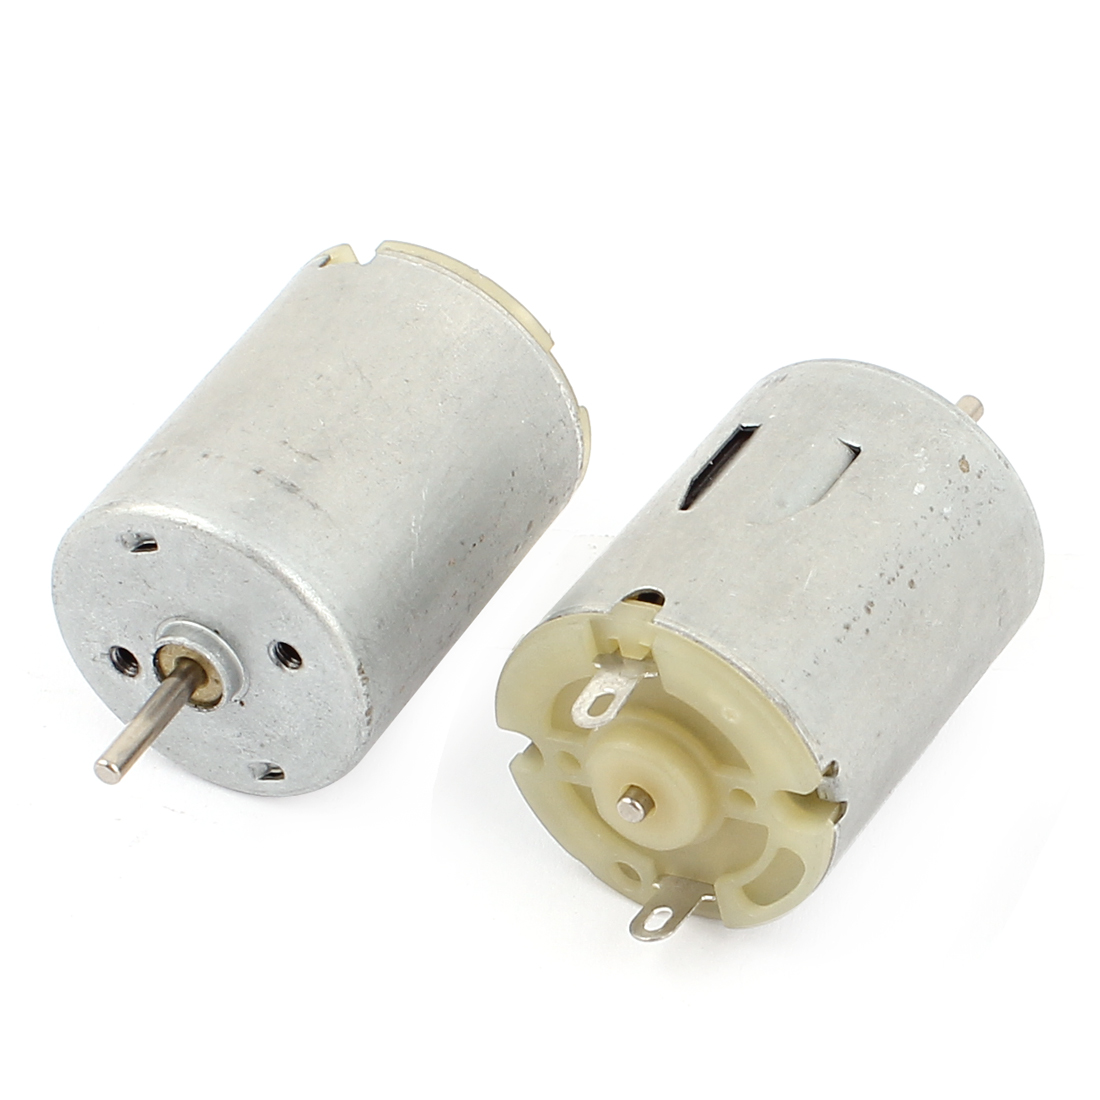 2 Pcs DC 3-9V 8700RPM High Speed 2mm Shaft Dia Cylinder Shaped Micro Electric Motor